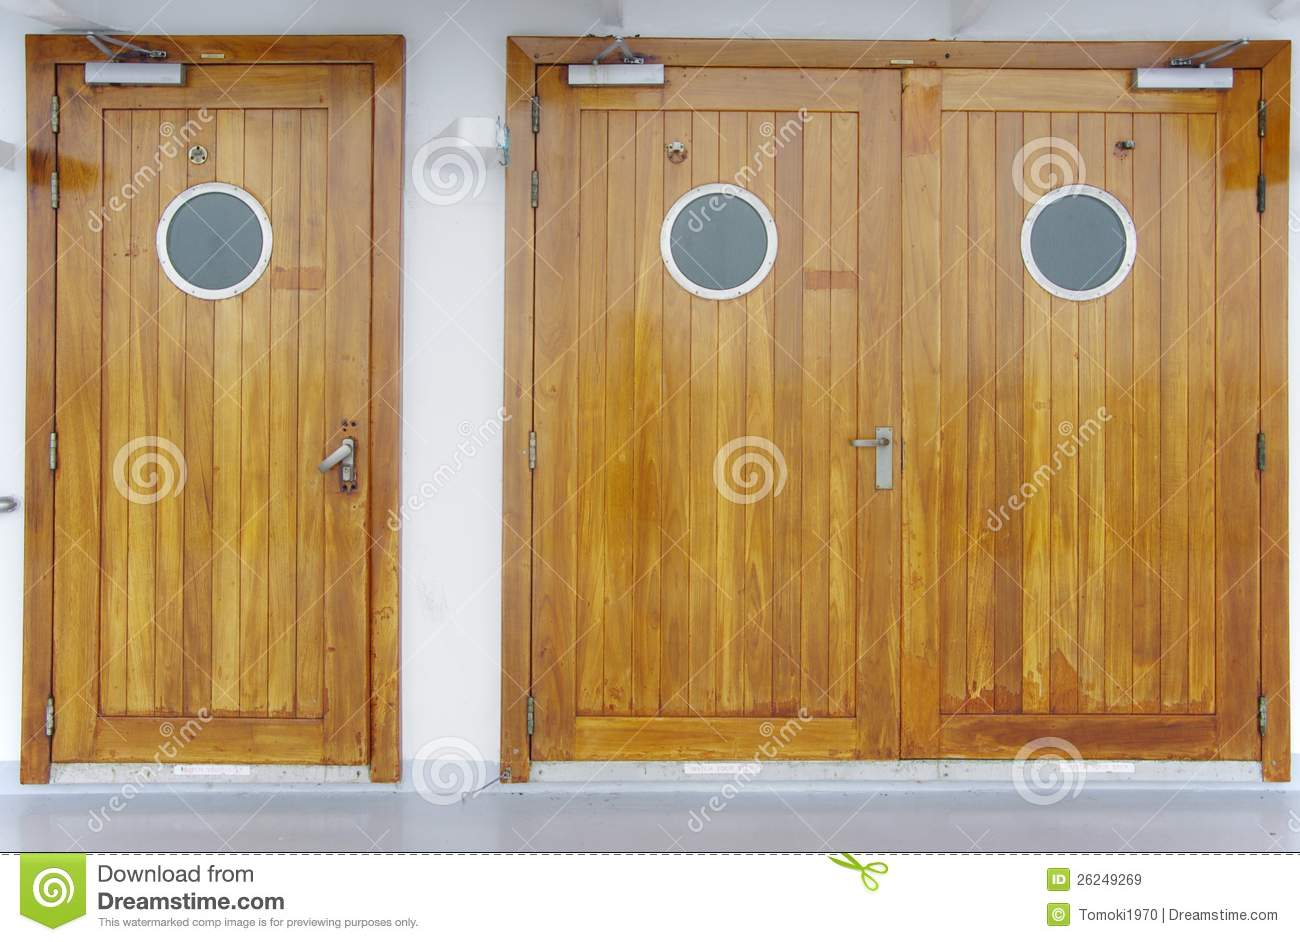 Wooden Doors With A Circle Window Stock Image - Image of ...